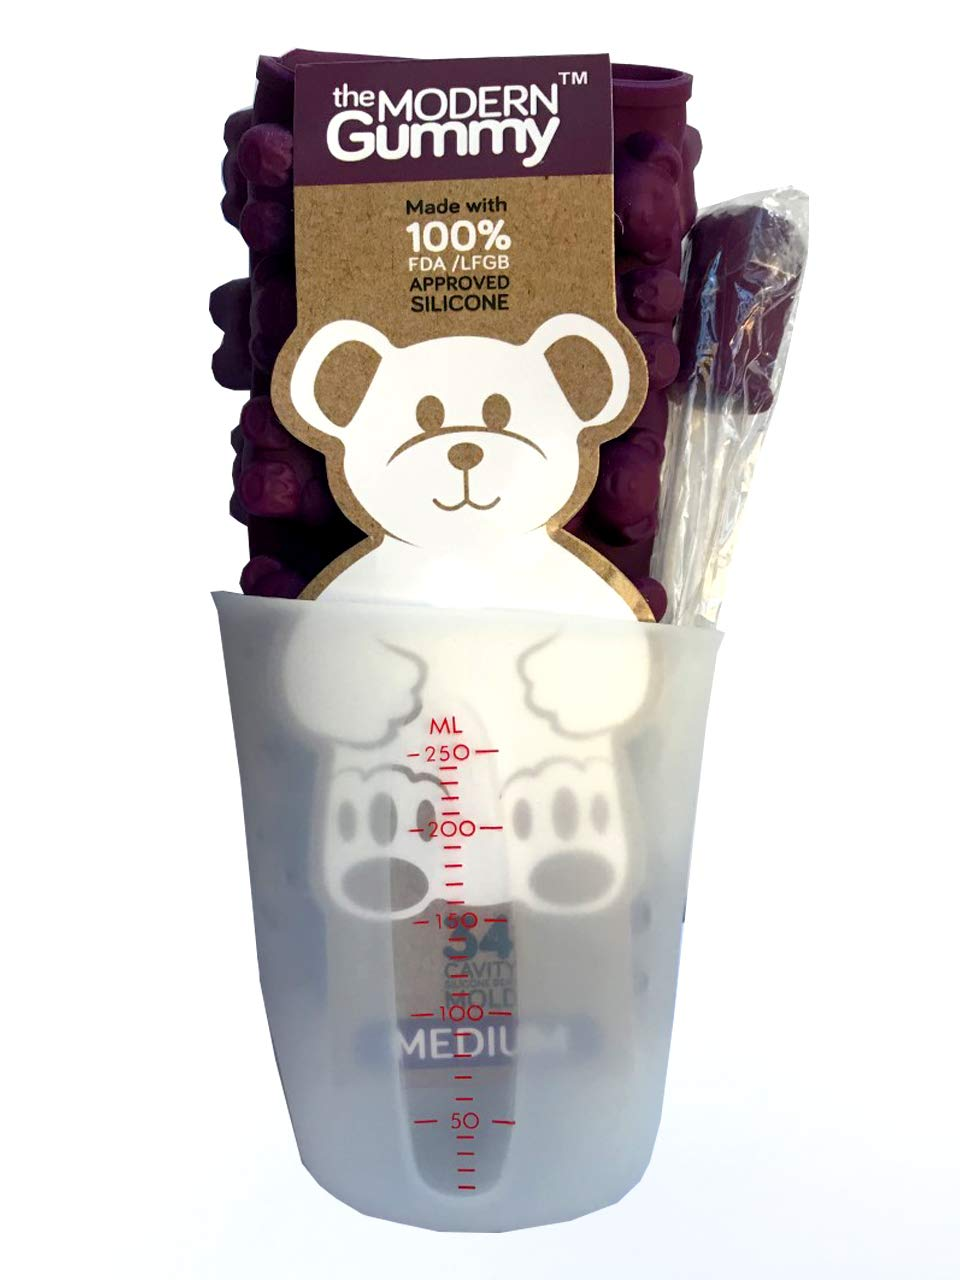 MEDIUM size GUMMY BEAR Mold with BONUS Pinch & Pour Cup + Dropper - by the Modern Gummy; Gelatin GUMMY Recipe on Package & FULL RECIPE PDF via EMAIL, PROFESSIONAL GRADE PURE LFGB SILICONE by The Modern Gummy (Image #5)